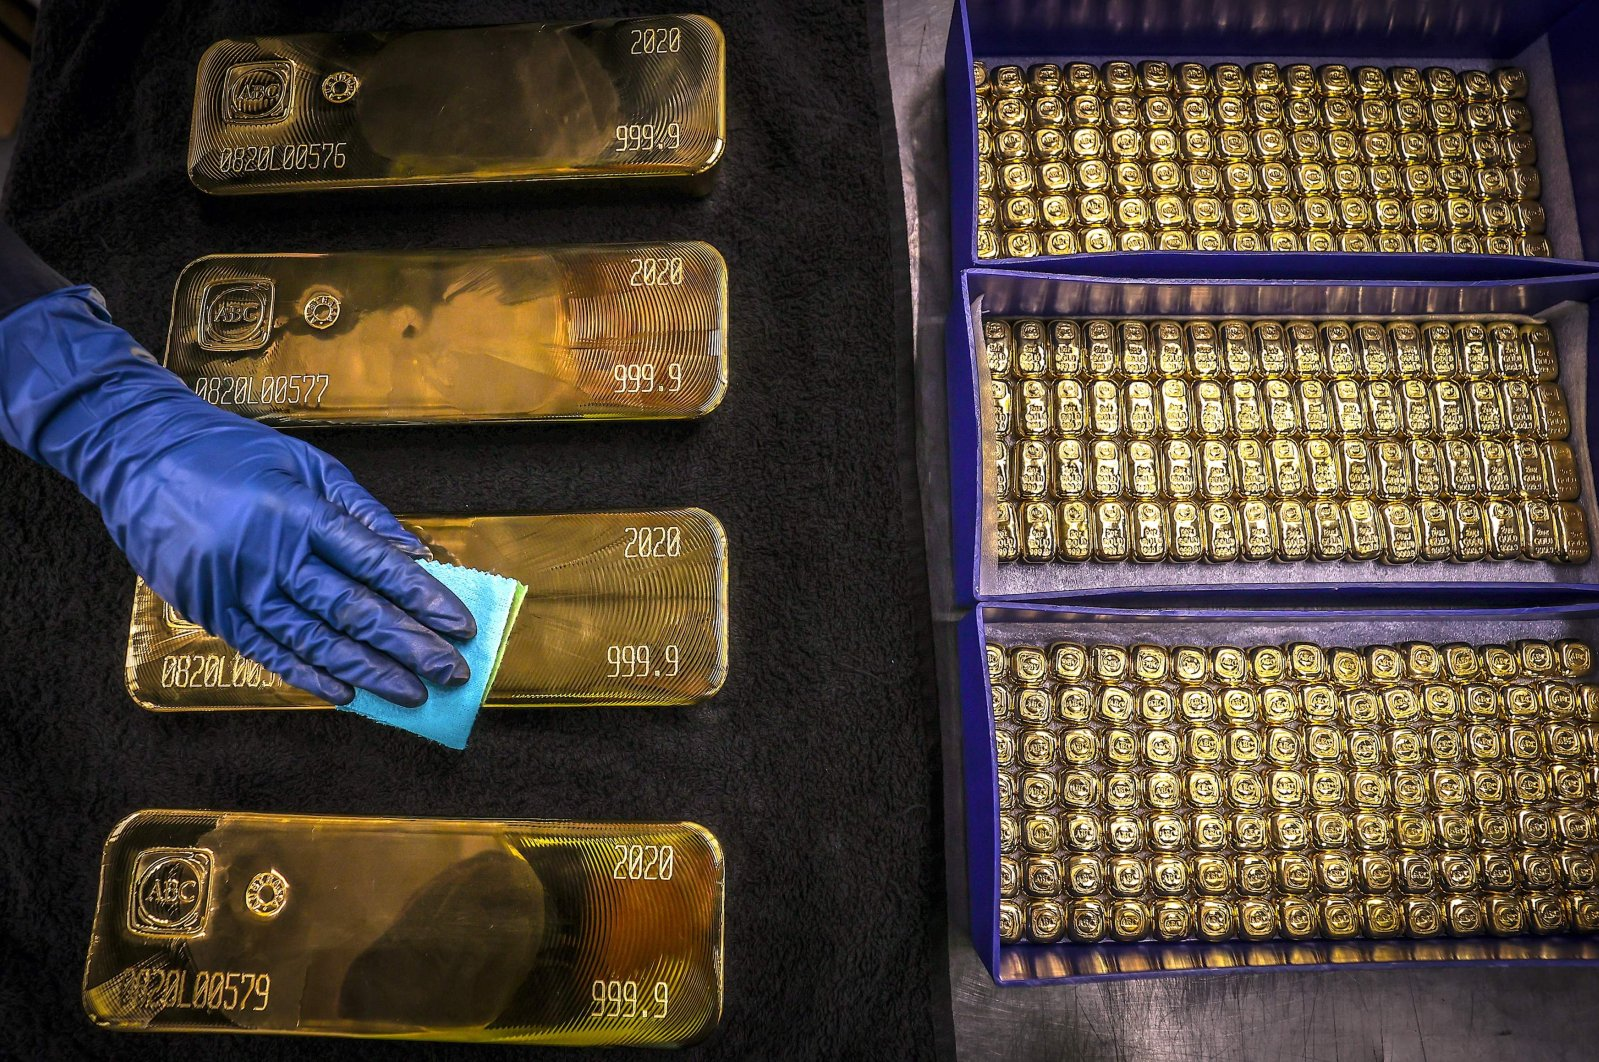 A worker polishes gold bullion bars at the ABC Refinery in Sydney, Australia, Aug. 5, 2020. (AP Photo)